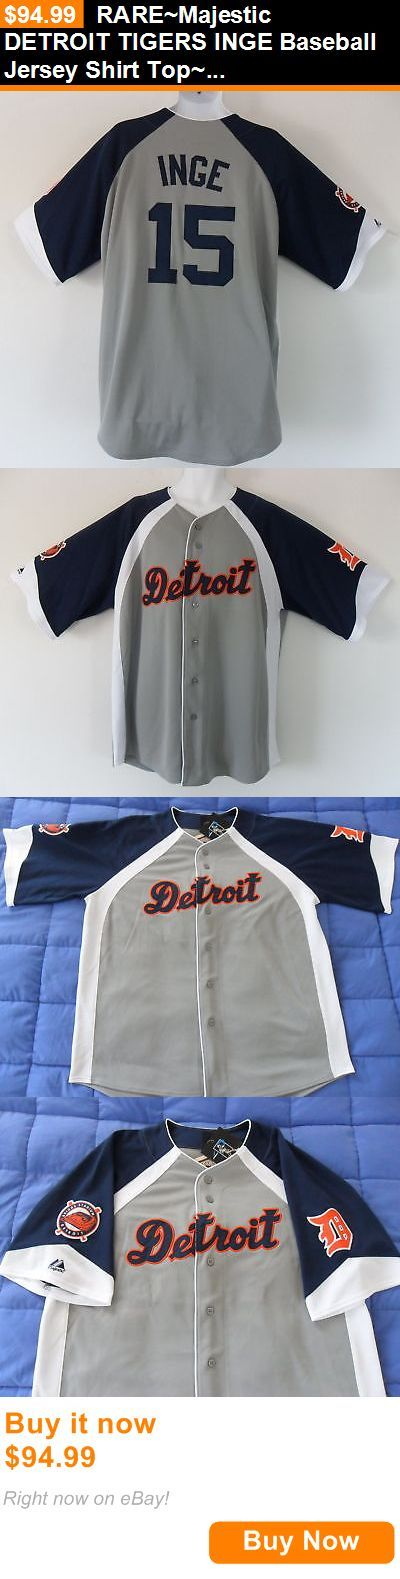 Baseball Shirts and Jerseys 181336: Rare~Majestic Detroit Tigers Inge Baseball Jersey Shirt Top~Mens Sz Sz Xl BUY IT NOW ONLY: $94.99